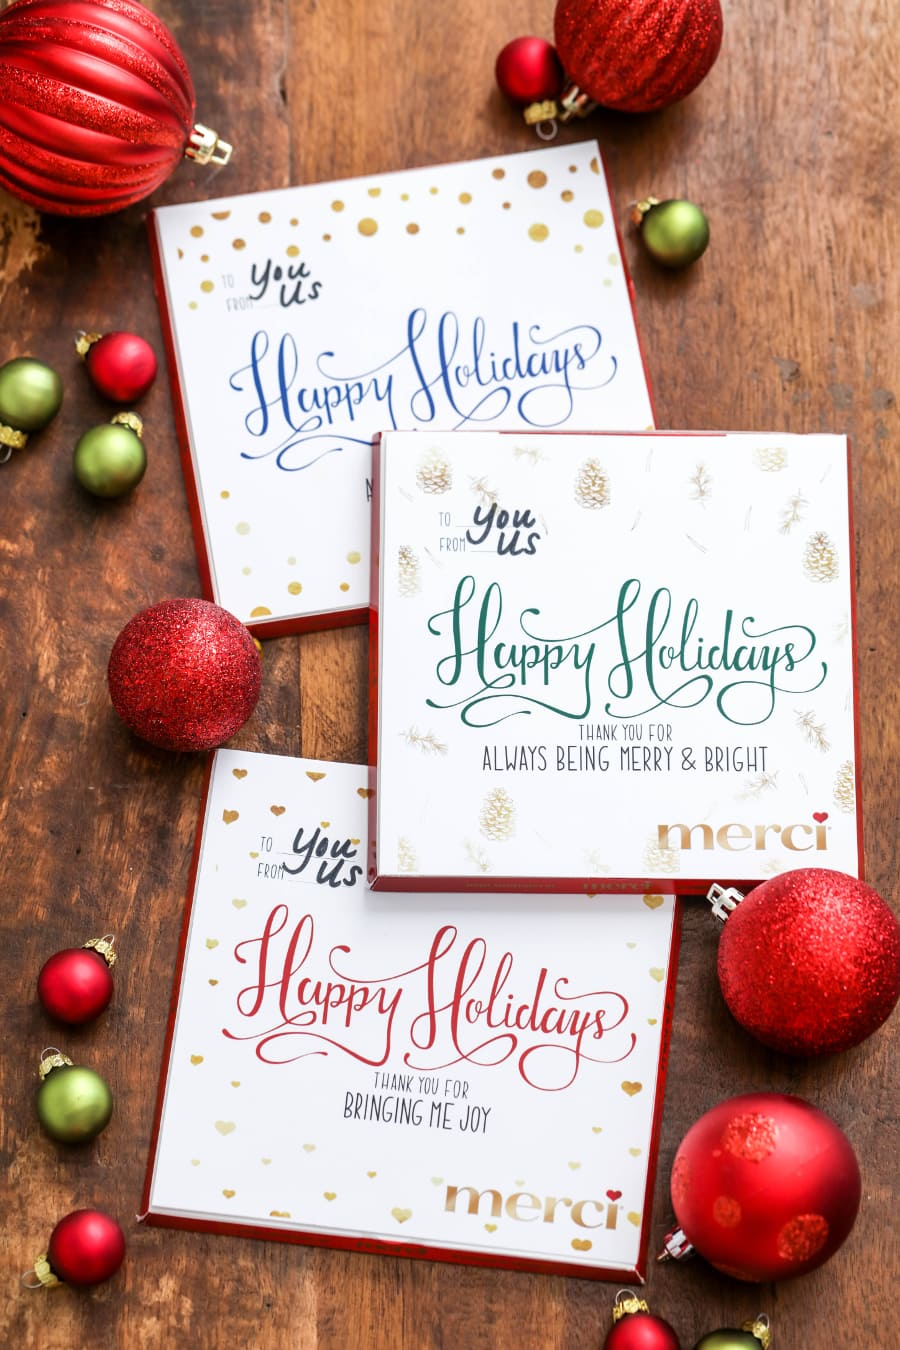 Gift merci chocolate this holiday season with free customizable inserts and a free list to help you keep track of your gift giving this Christmas!